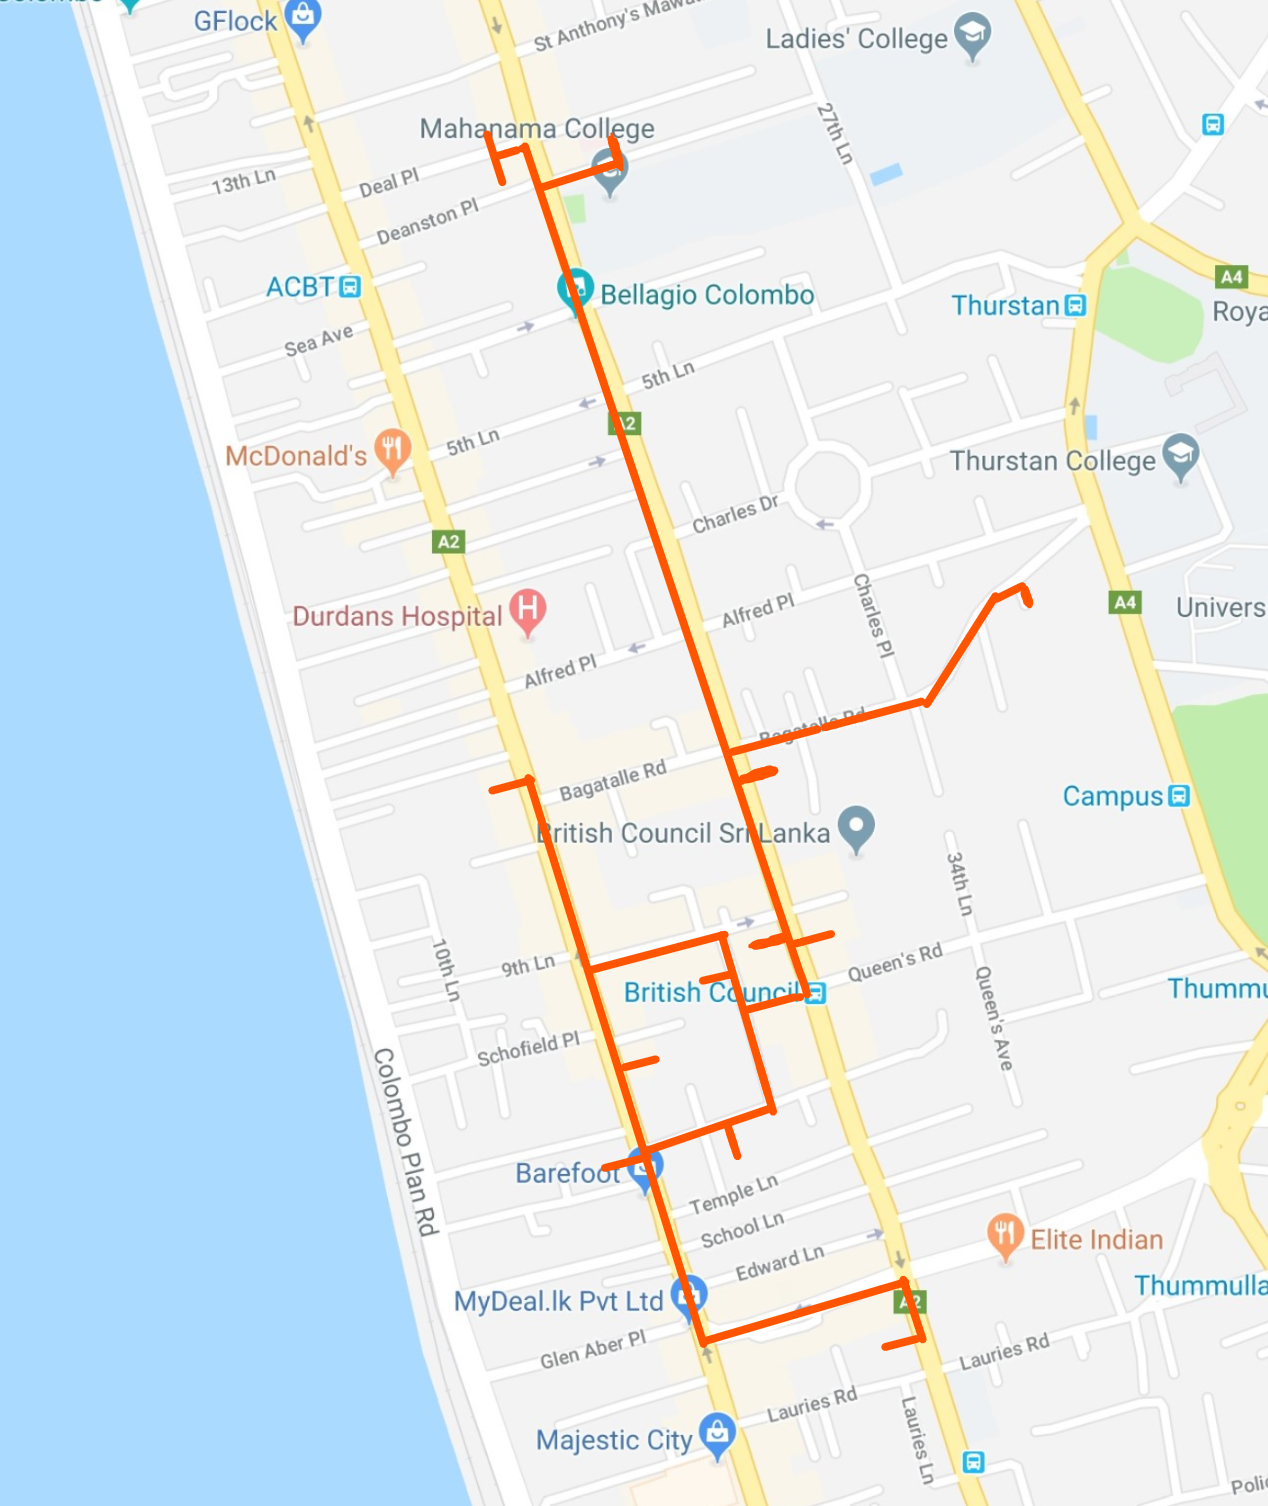 Hand drawn itinerary of Colombo shopping guide for the Colombo 3 South district on © Google Maps